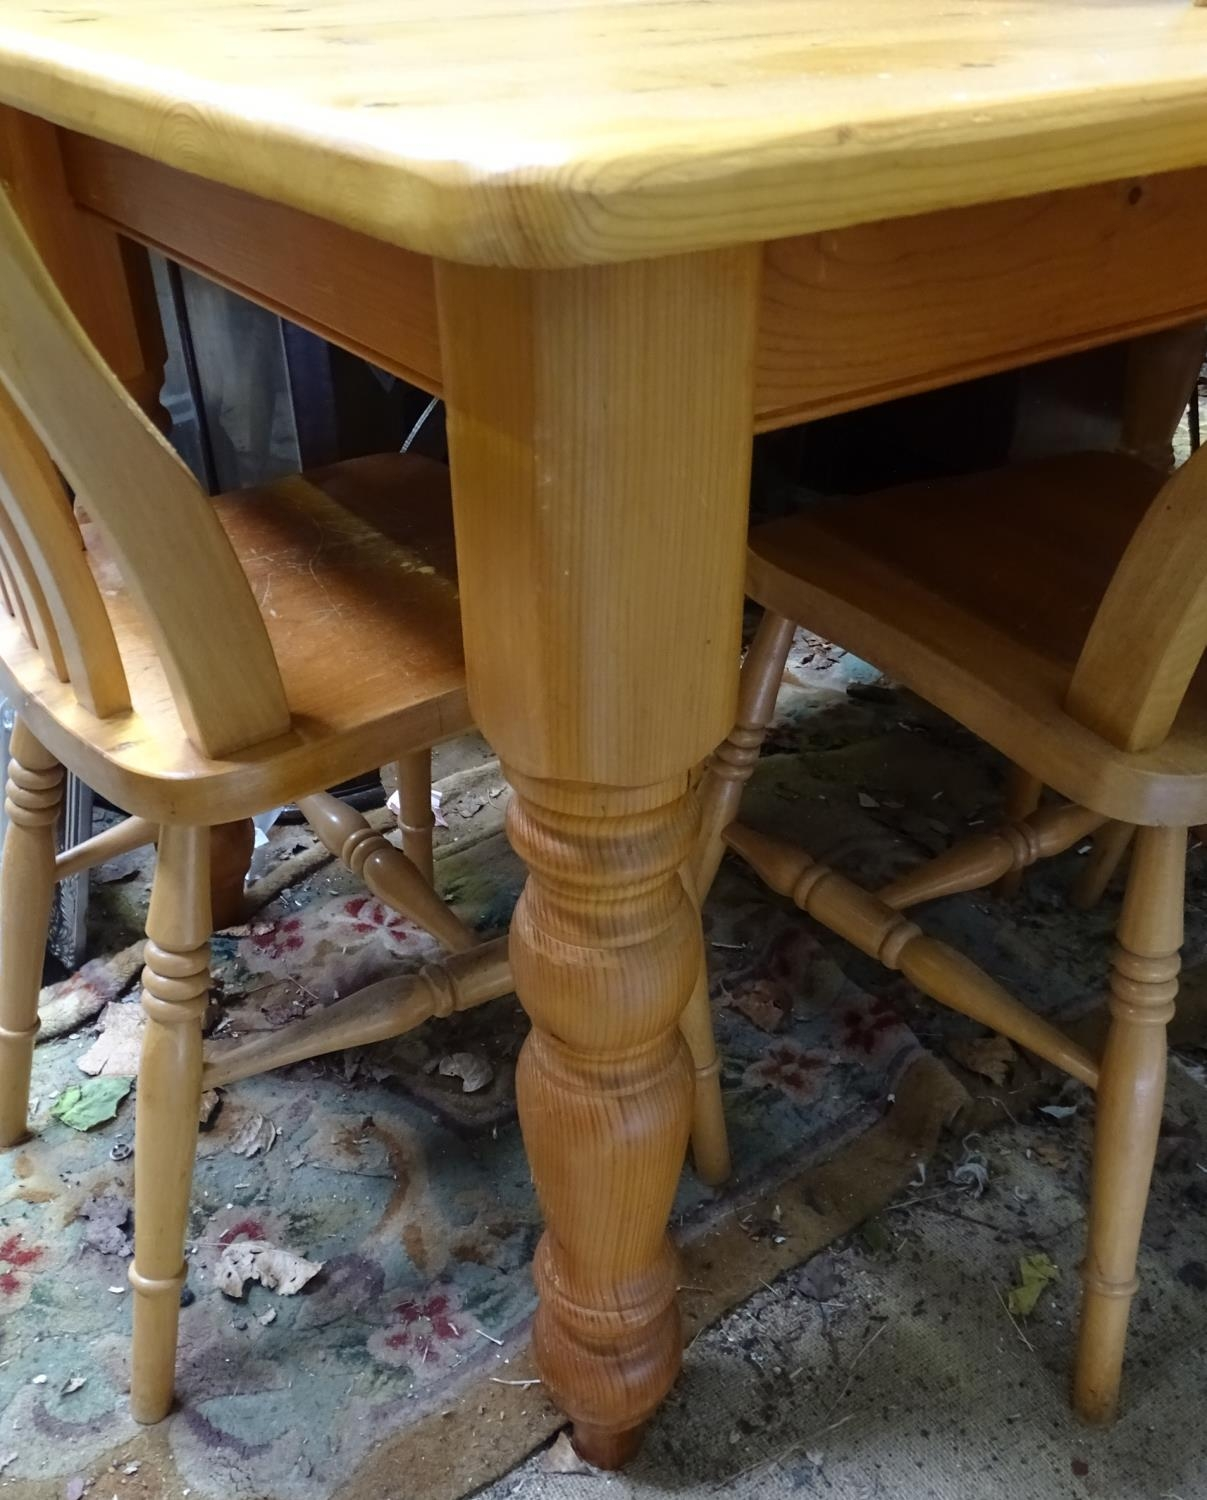 A pine dining table with 6 chairs Please Note - we do not make reference to the condition of lots - Image 5 of 5